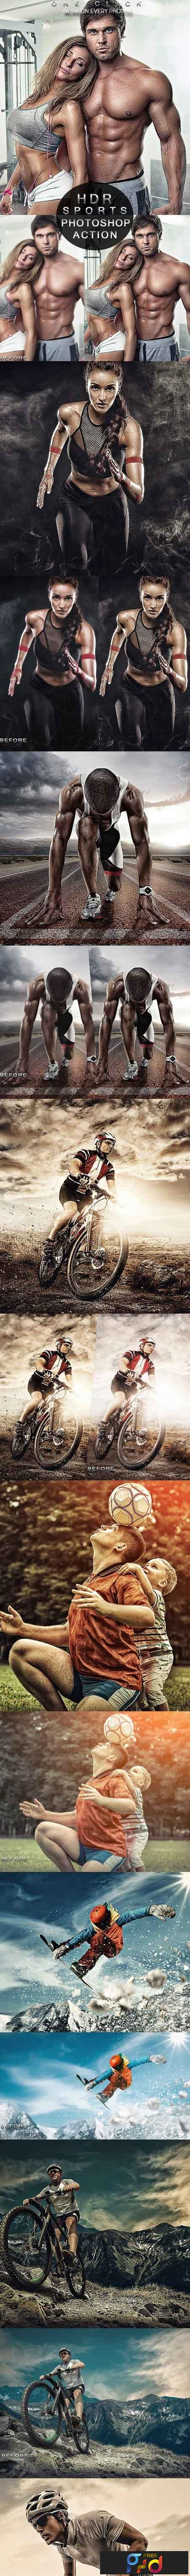 PRO Sports Photoshop Action 23035345 1